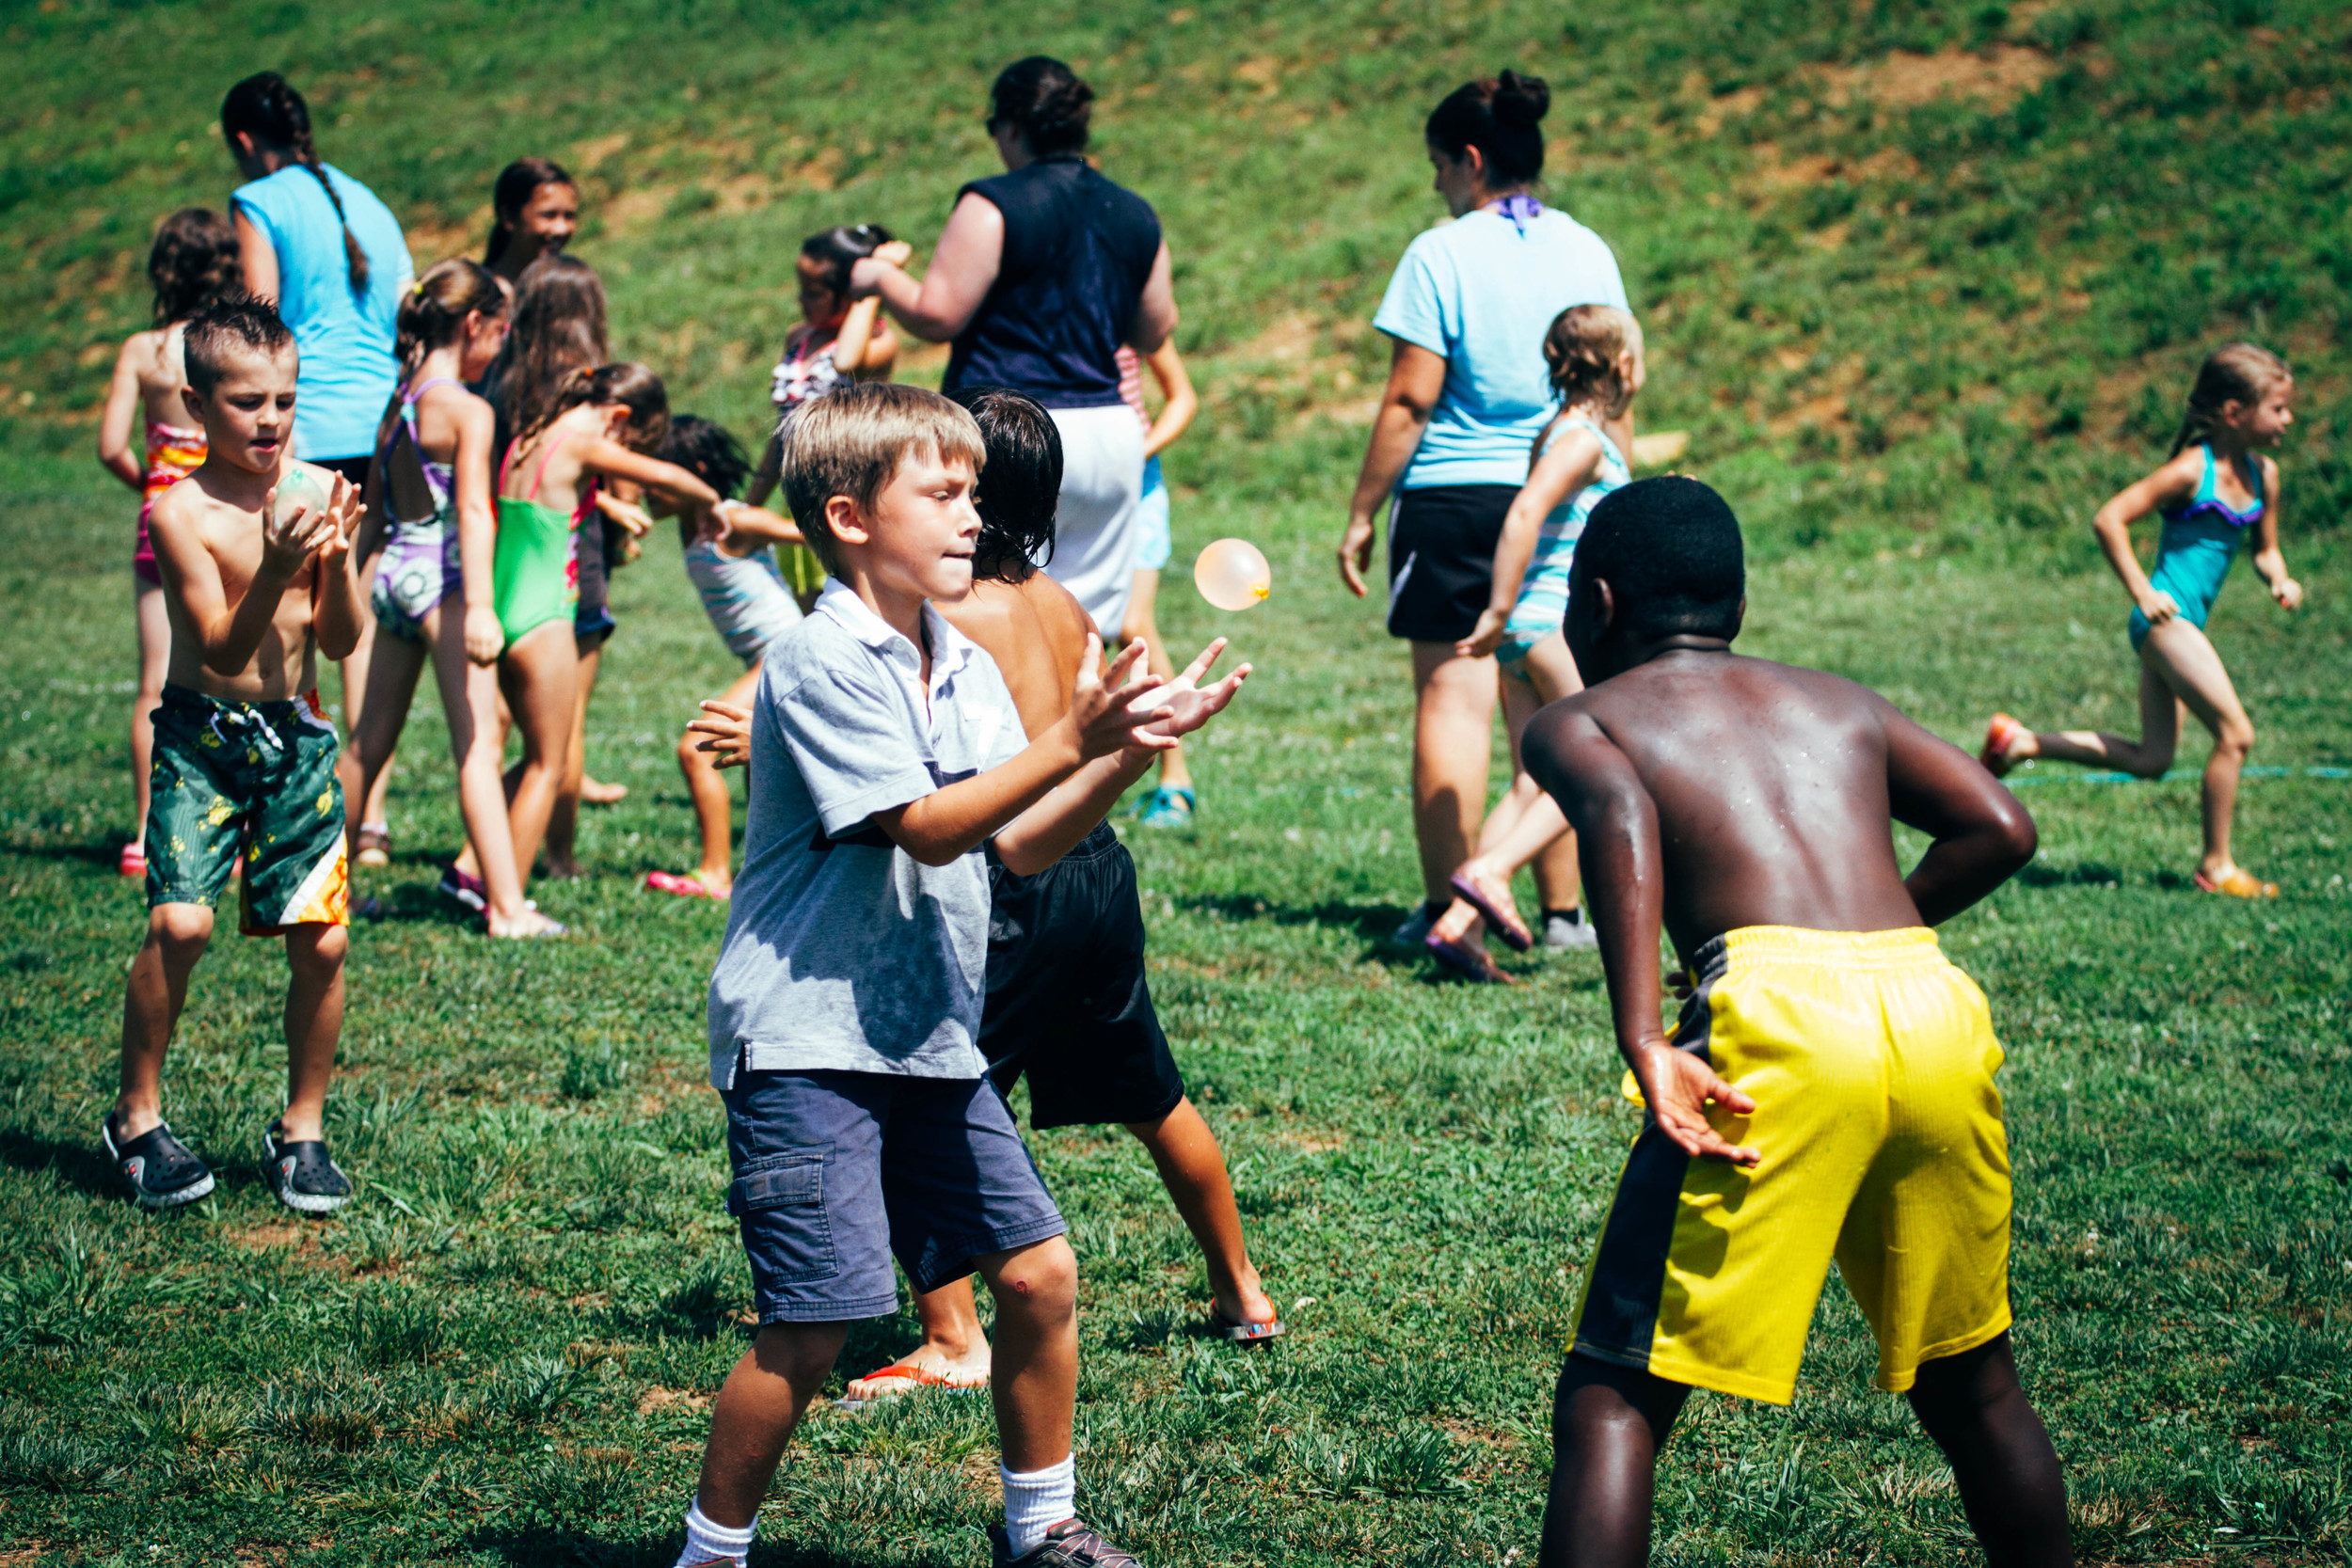 In the Tennessee heat, water activities are a must in July. But at Camp Skillz, activities like these are also an opportunity to learn lessons about teamwork, competition, and rewards.